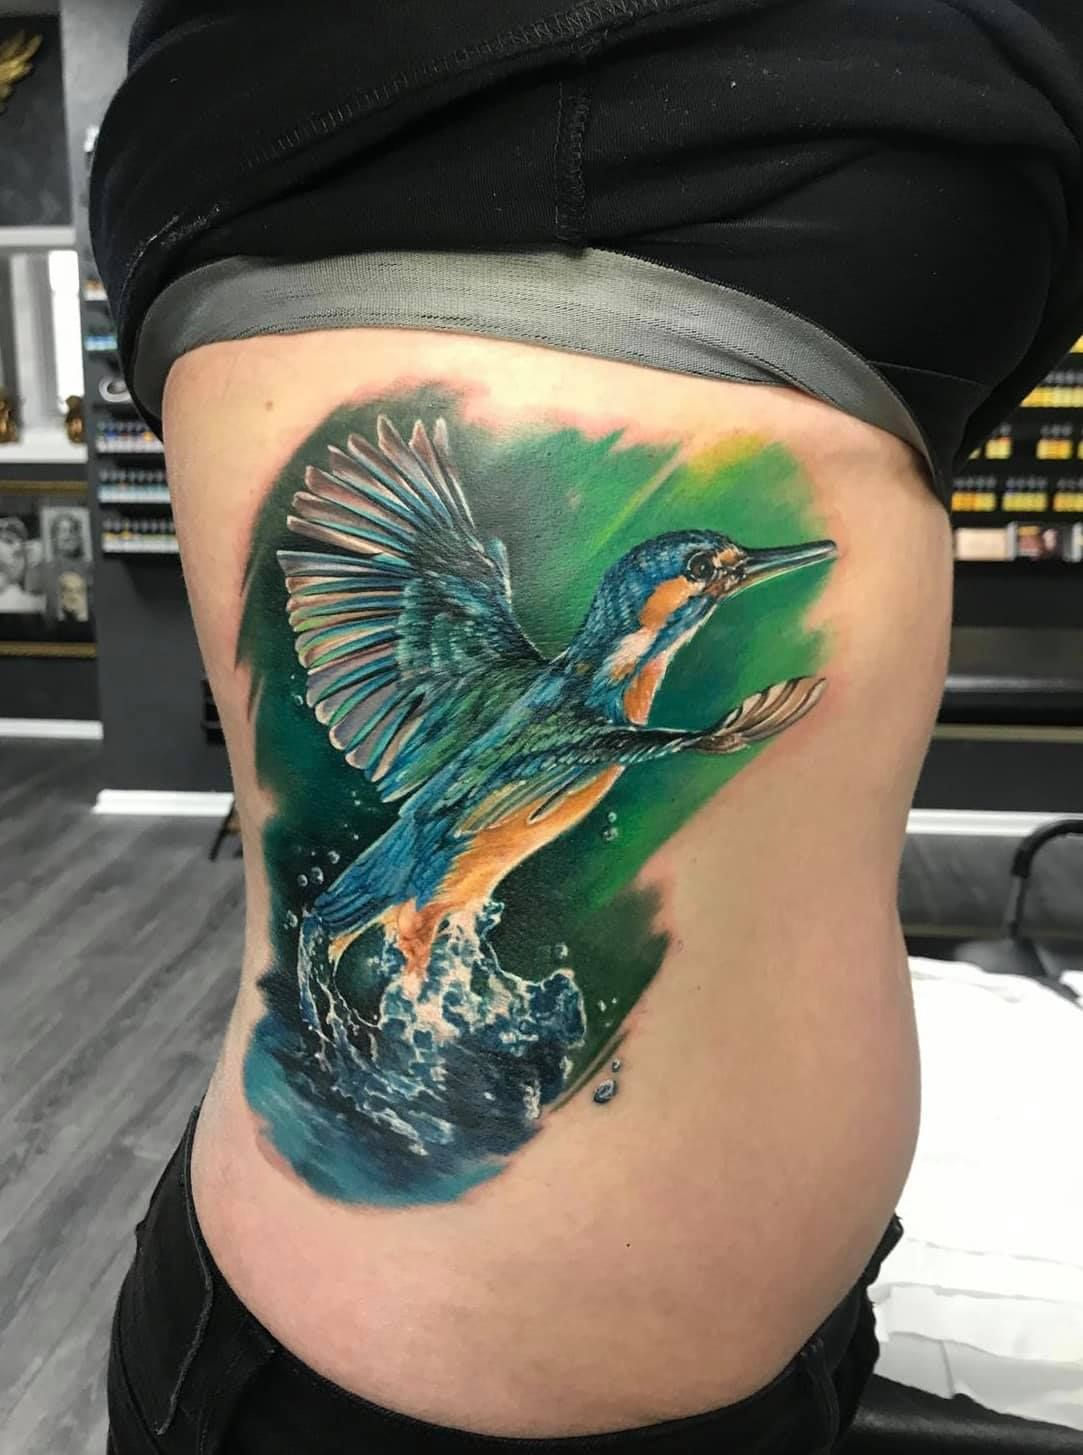 Kingfisher tattoo by Ana. Limited spaces available at Holy